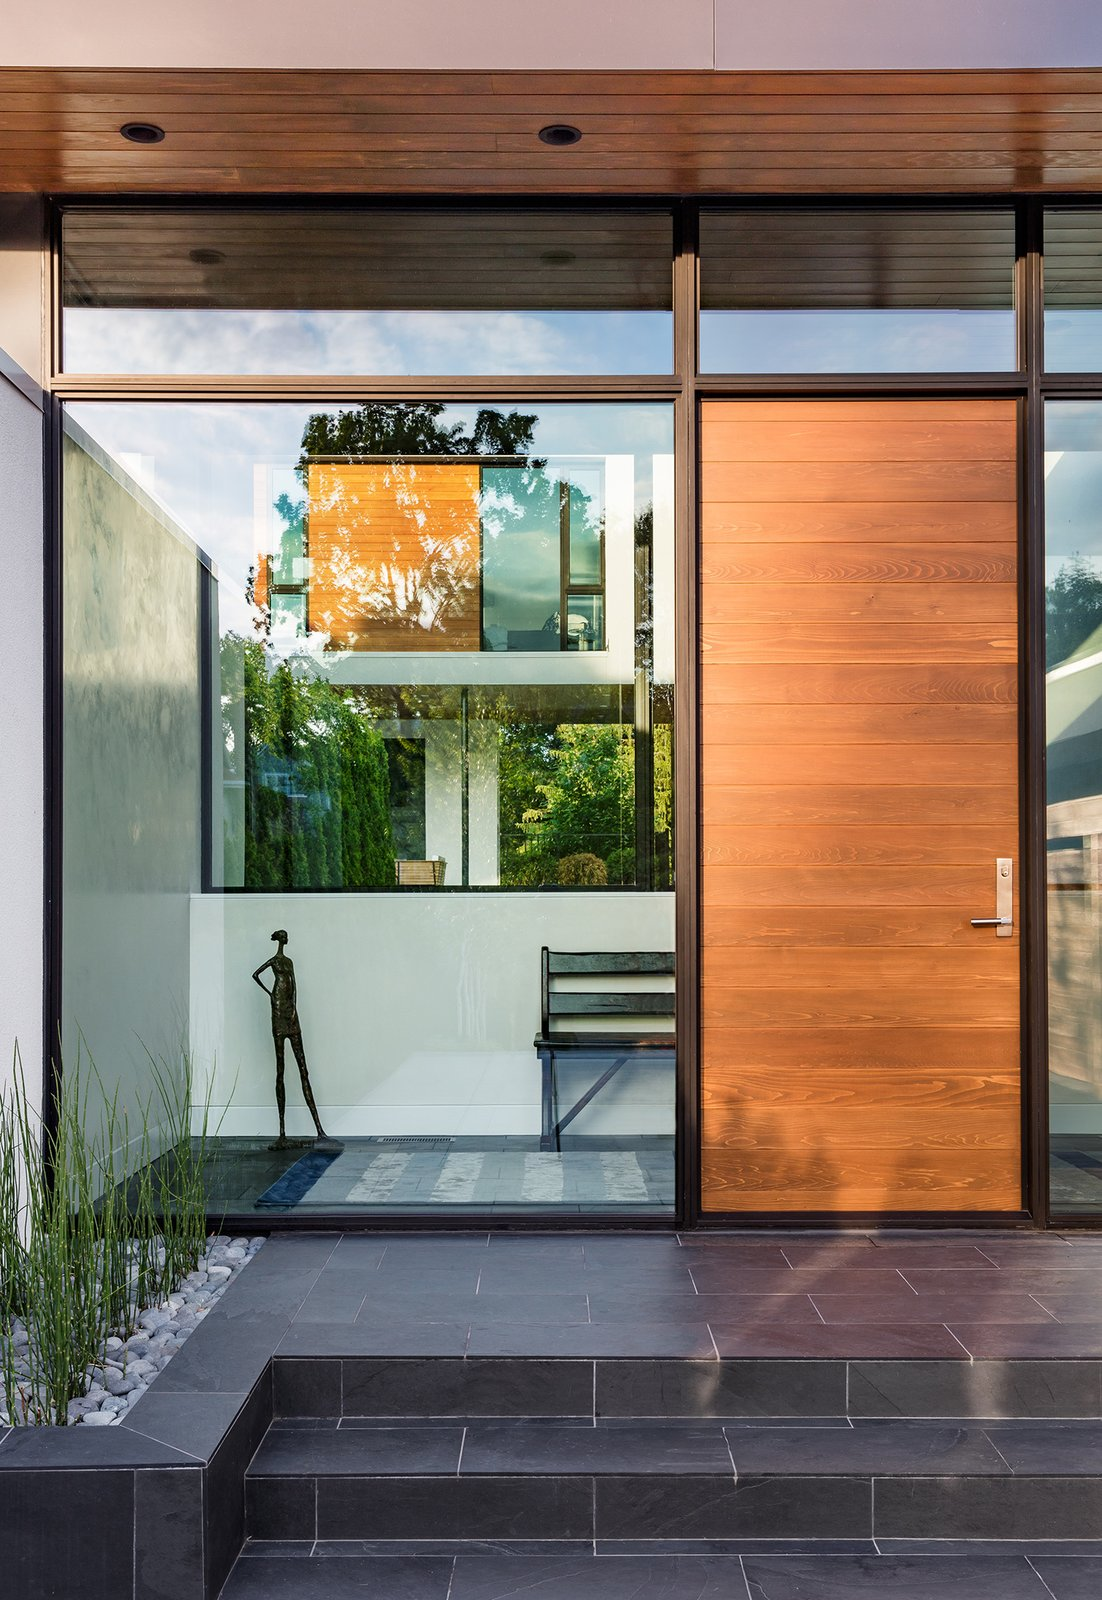 Tagged: Exterior, Swing Door Type, Metal, Picture Window Type, Outdoor, Front Yard, Tile Patio, Porch, Deck, and Raised Planters.  Calhoun Pavilions Residence by Peterssen/Keller Architecture